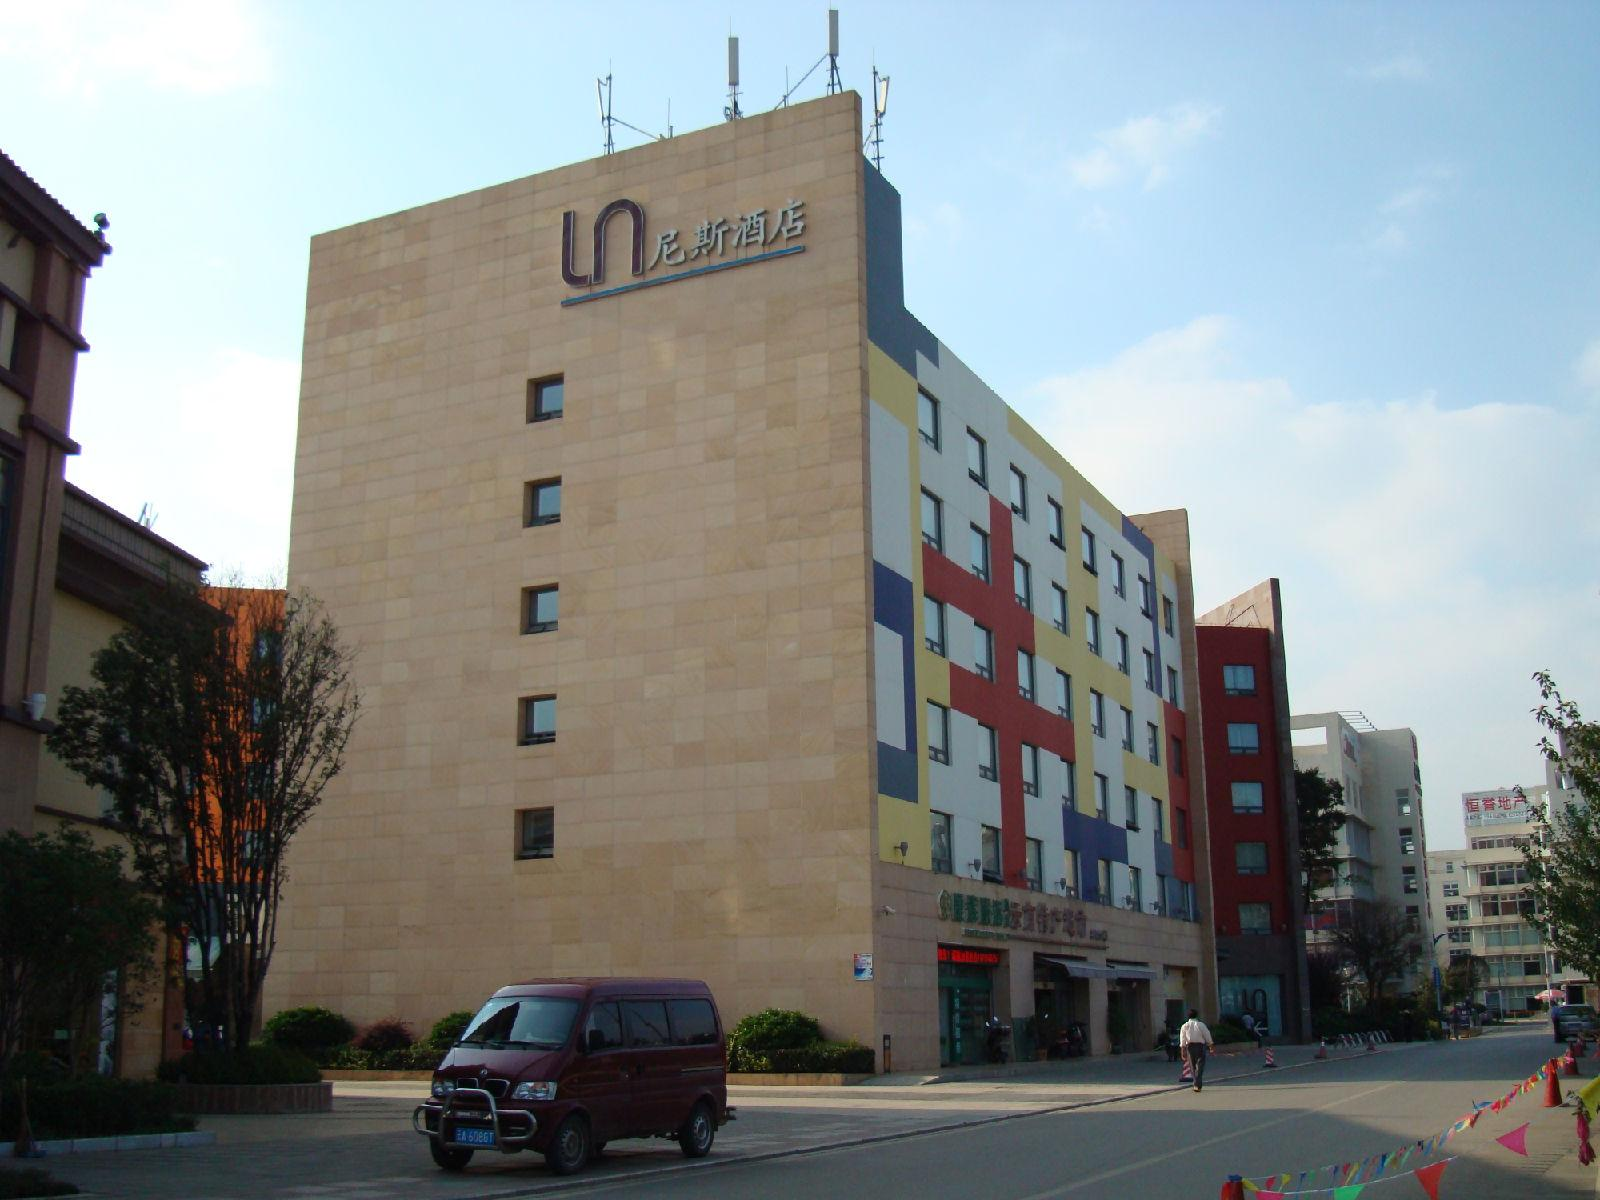 Kunming New Asia La Nice Hotel - Hotel and accommodation in China in Kunming